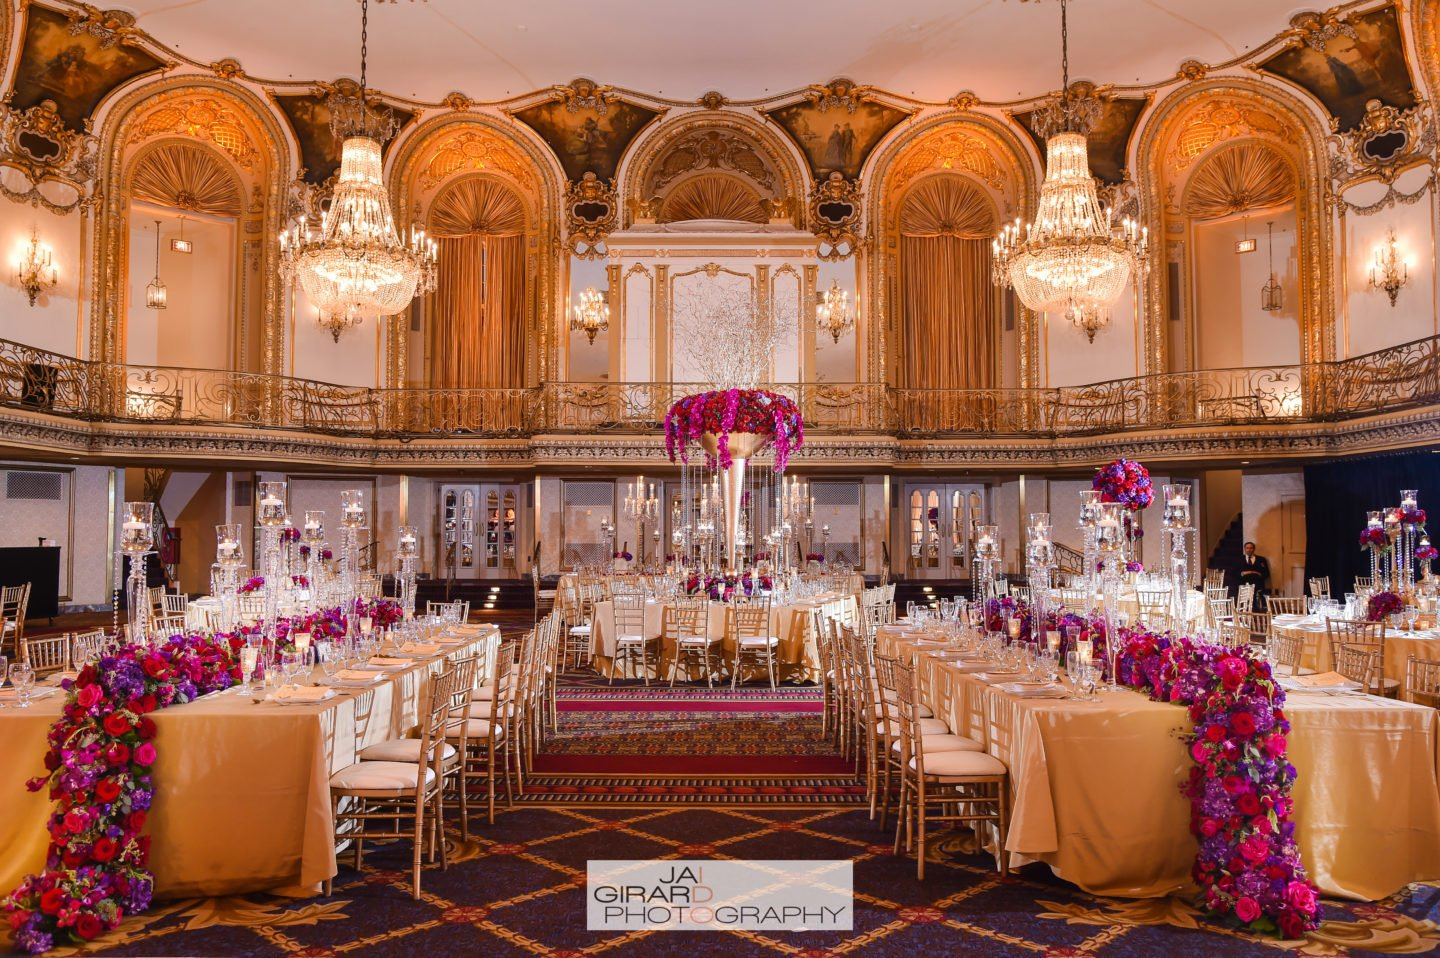 decorations indian reception decoration luxury event weddings flowers table centerpieces grand chicago hilton yannidesignstudio floral tables venues hotel drake ballroom